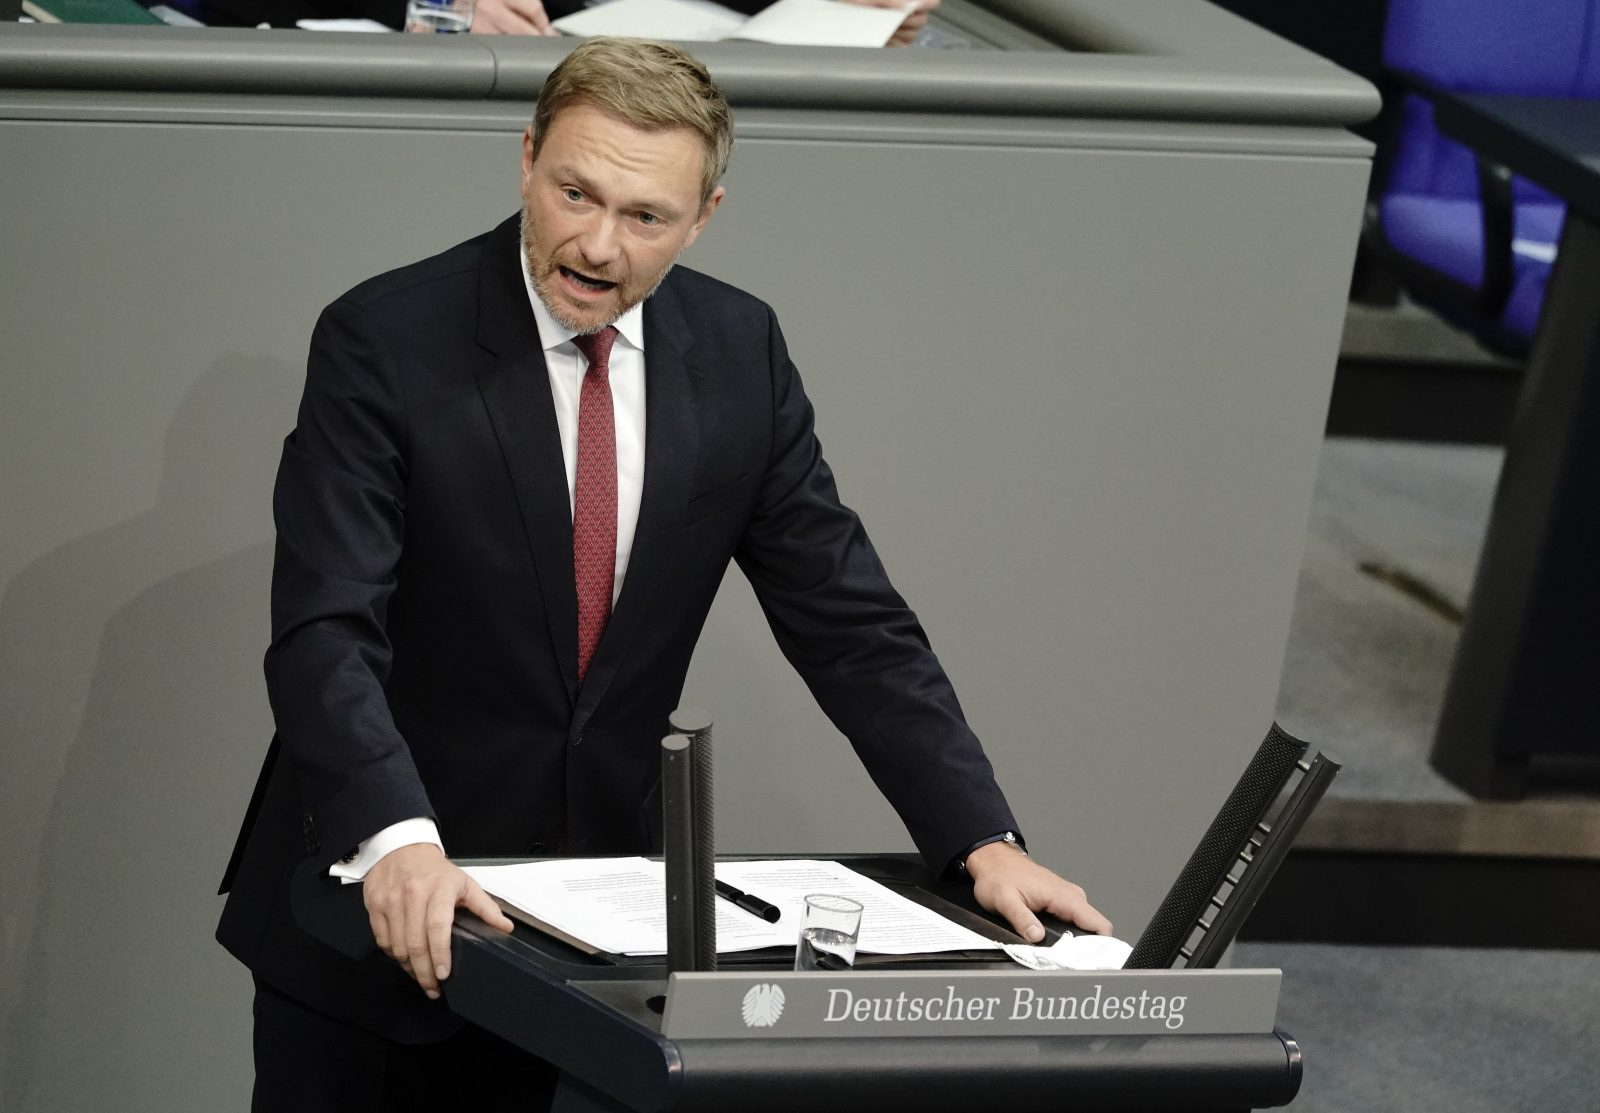 FDP-Chef Christian Lindner attackiert US-Präsident Donald Trump Foto: picture alliance/Michael Kappeler/dpa